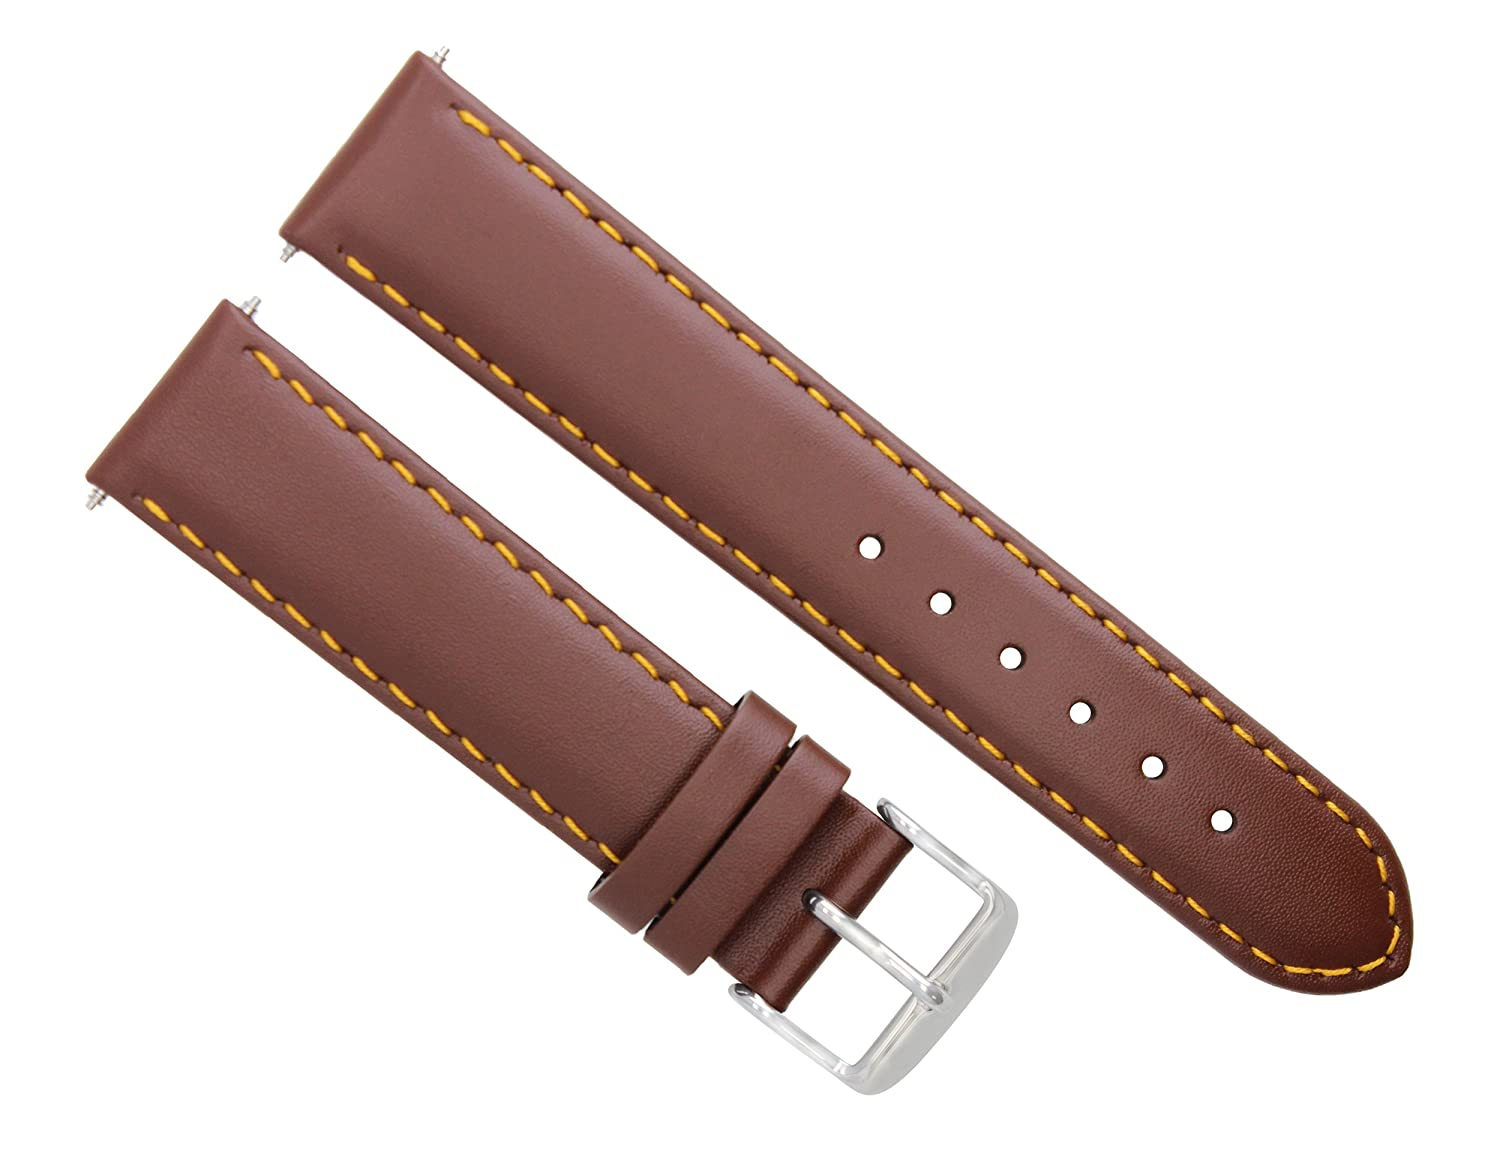 18 – 19 – 20 – 22 – 24 mmレザー腕時計バンドストラップSmooth for Seiko L/Brown # 4 18mm-18mm Light Brown with Orange stitching  Light Brown with Orange stitching 18mm-18mm B07FH7Y8P8